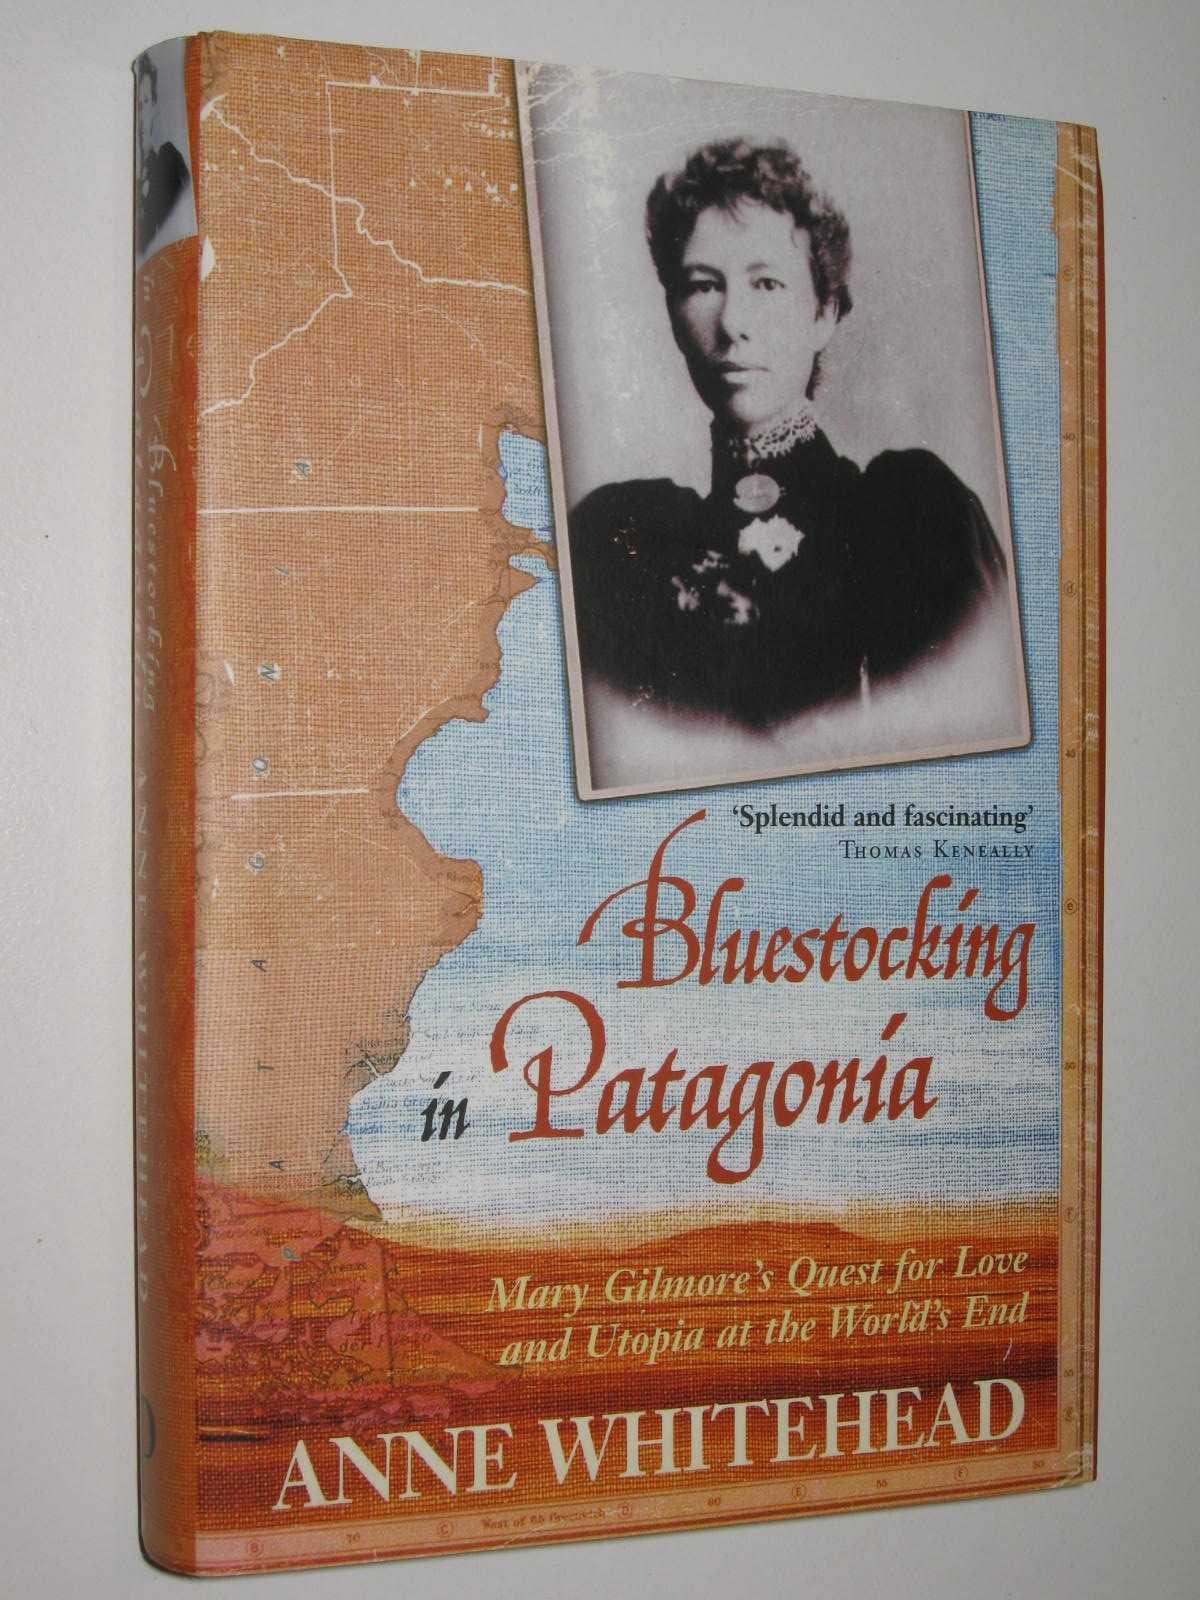 Image for Blue Stocking in Patagonia : Mary Gilmore's Quest for Love and Utopia at the World's End